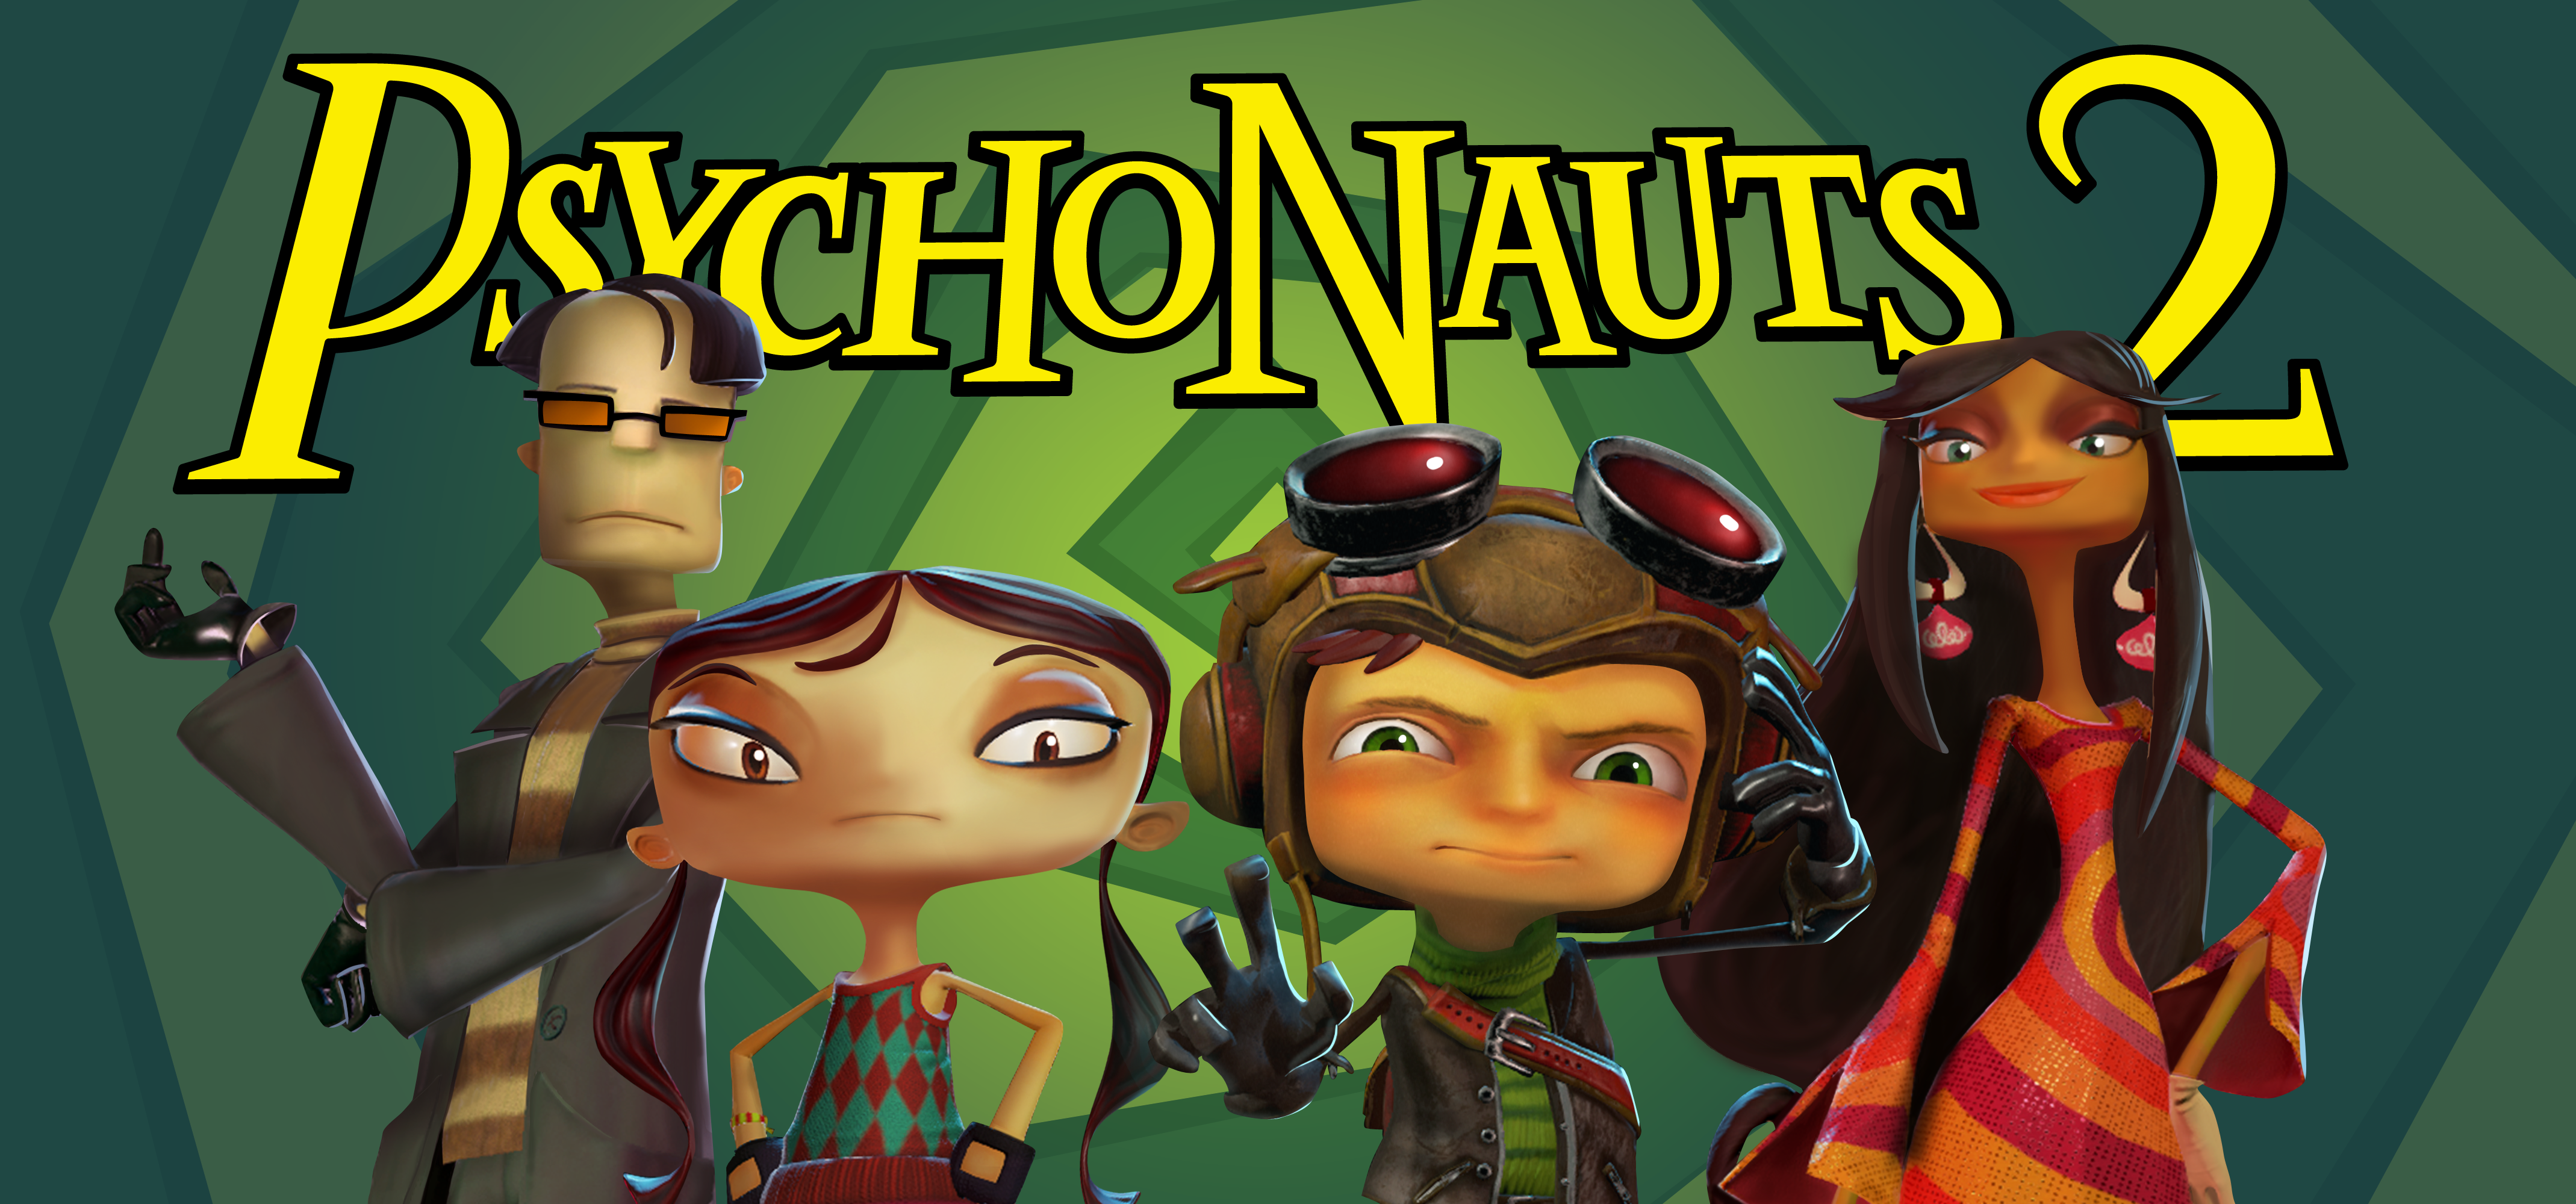 Psychonauts 2 is in development, and anyone can profit from its success #thegameawards